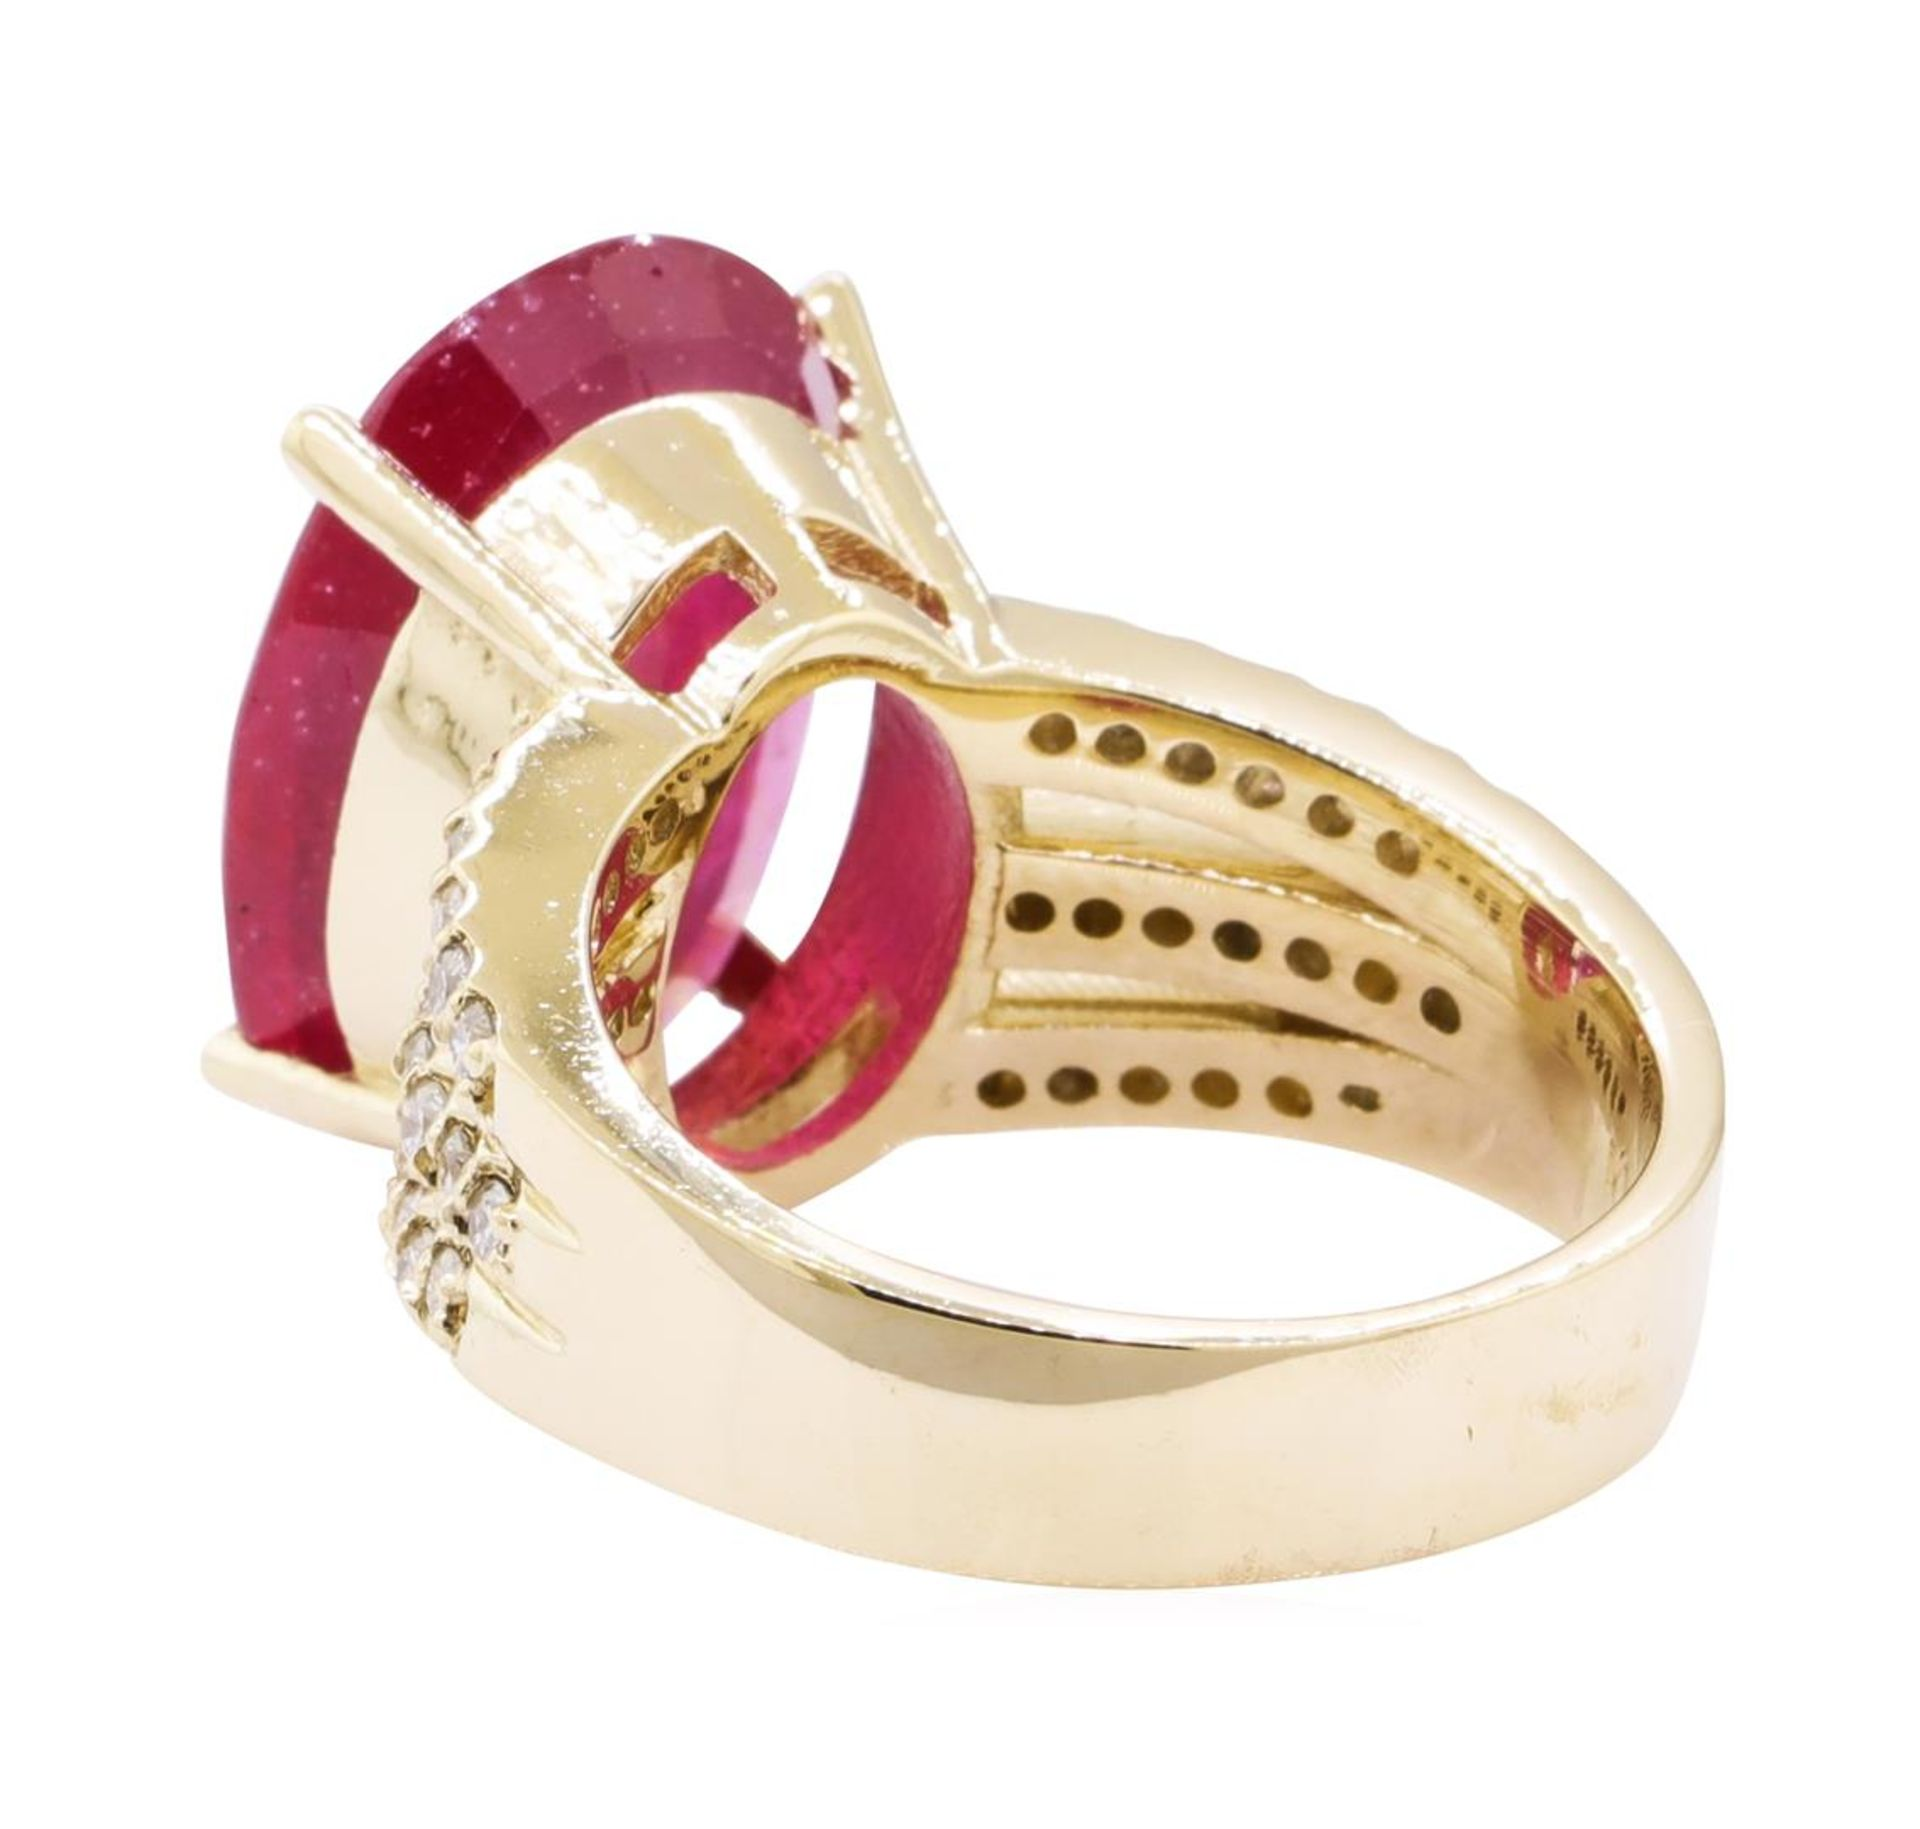 11.80 ctw Ruby And Diamond Ring - 14KT Yellow Gold - Image 3 of 5